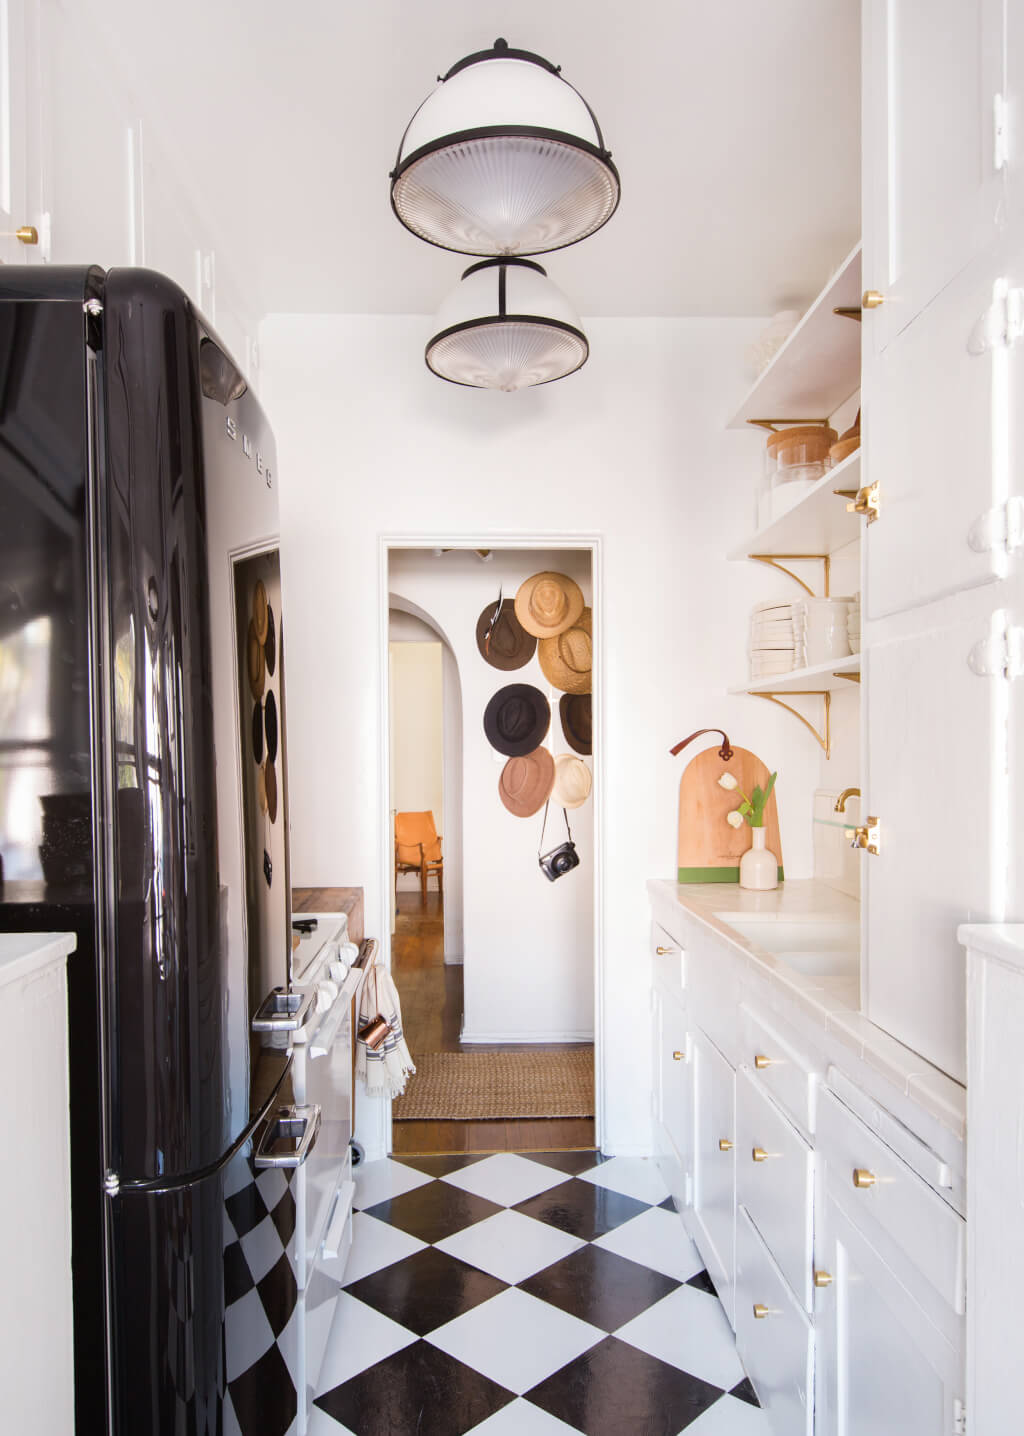 Brady-Tolbert_Emily-Henderson_Black-and-White-Kitchen_Vintage_Apartment-Refresh_Wood_Brass_Checkered-Floor_Copper-Pots_Eclectic_Glam_Modern_Traditional_22-1024x1436